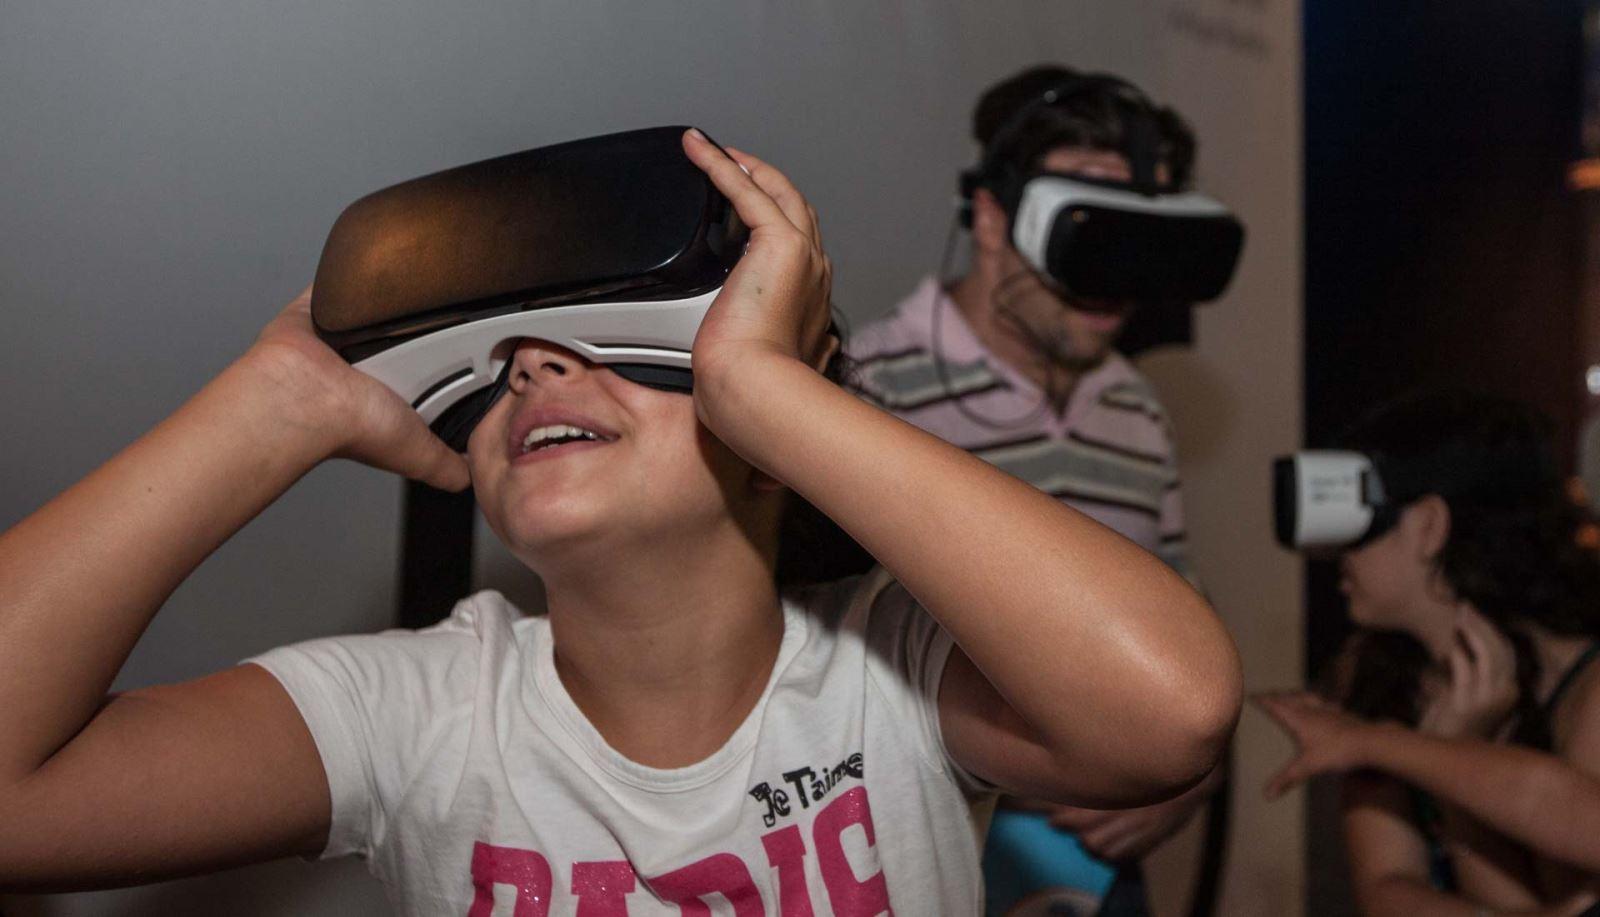 Virtual reality experiance